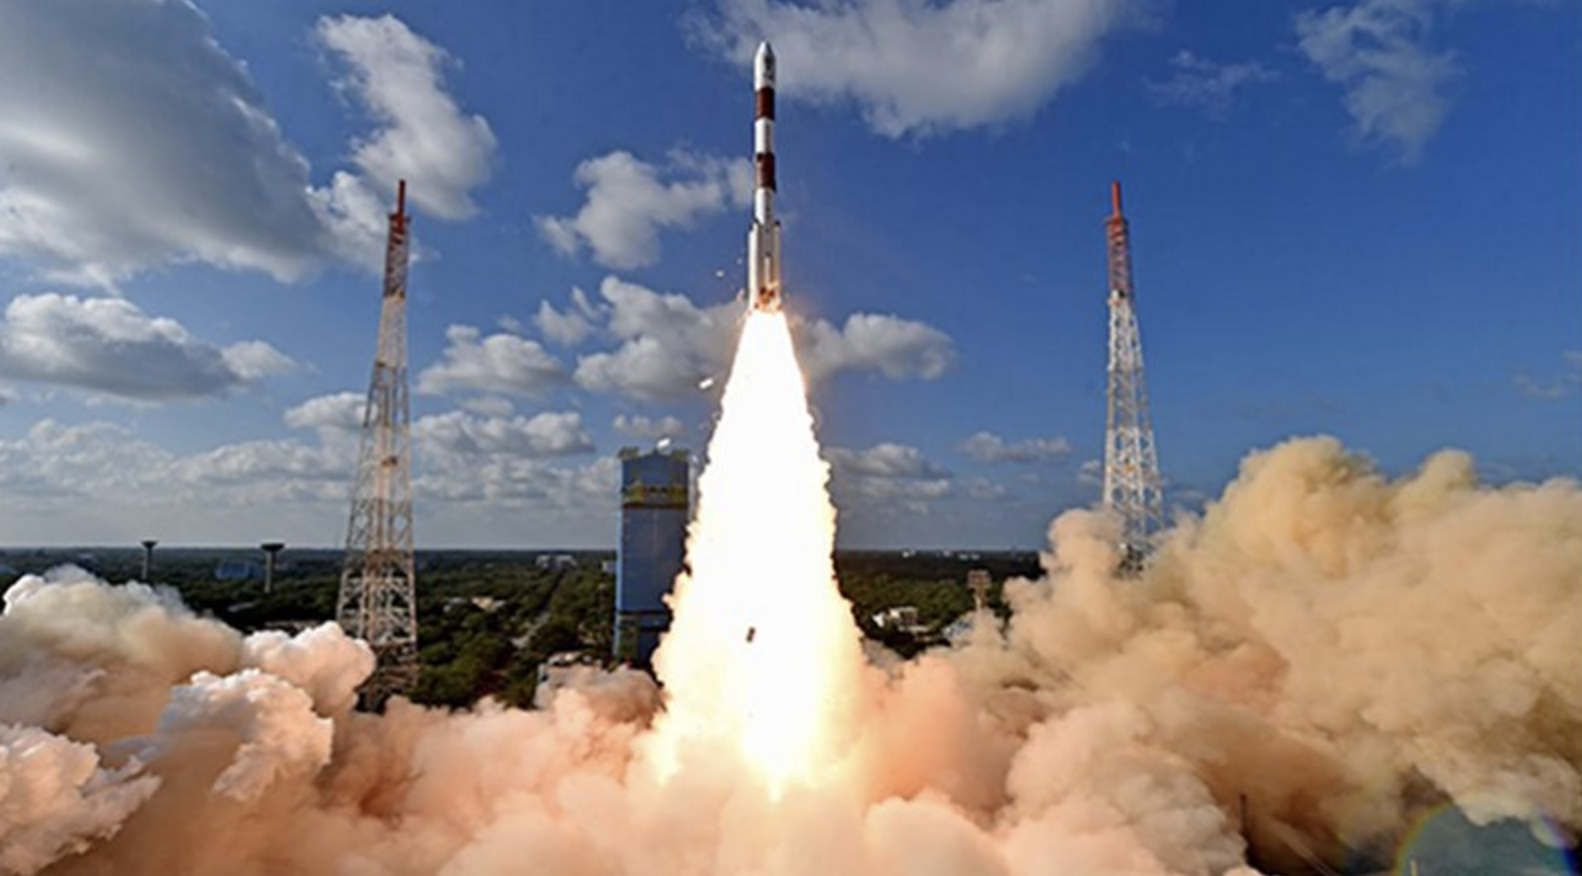 India and Its Outer Space Ambition: First Crewed Mission in 2021 And Geopolitics – Analysis